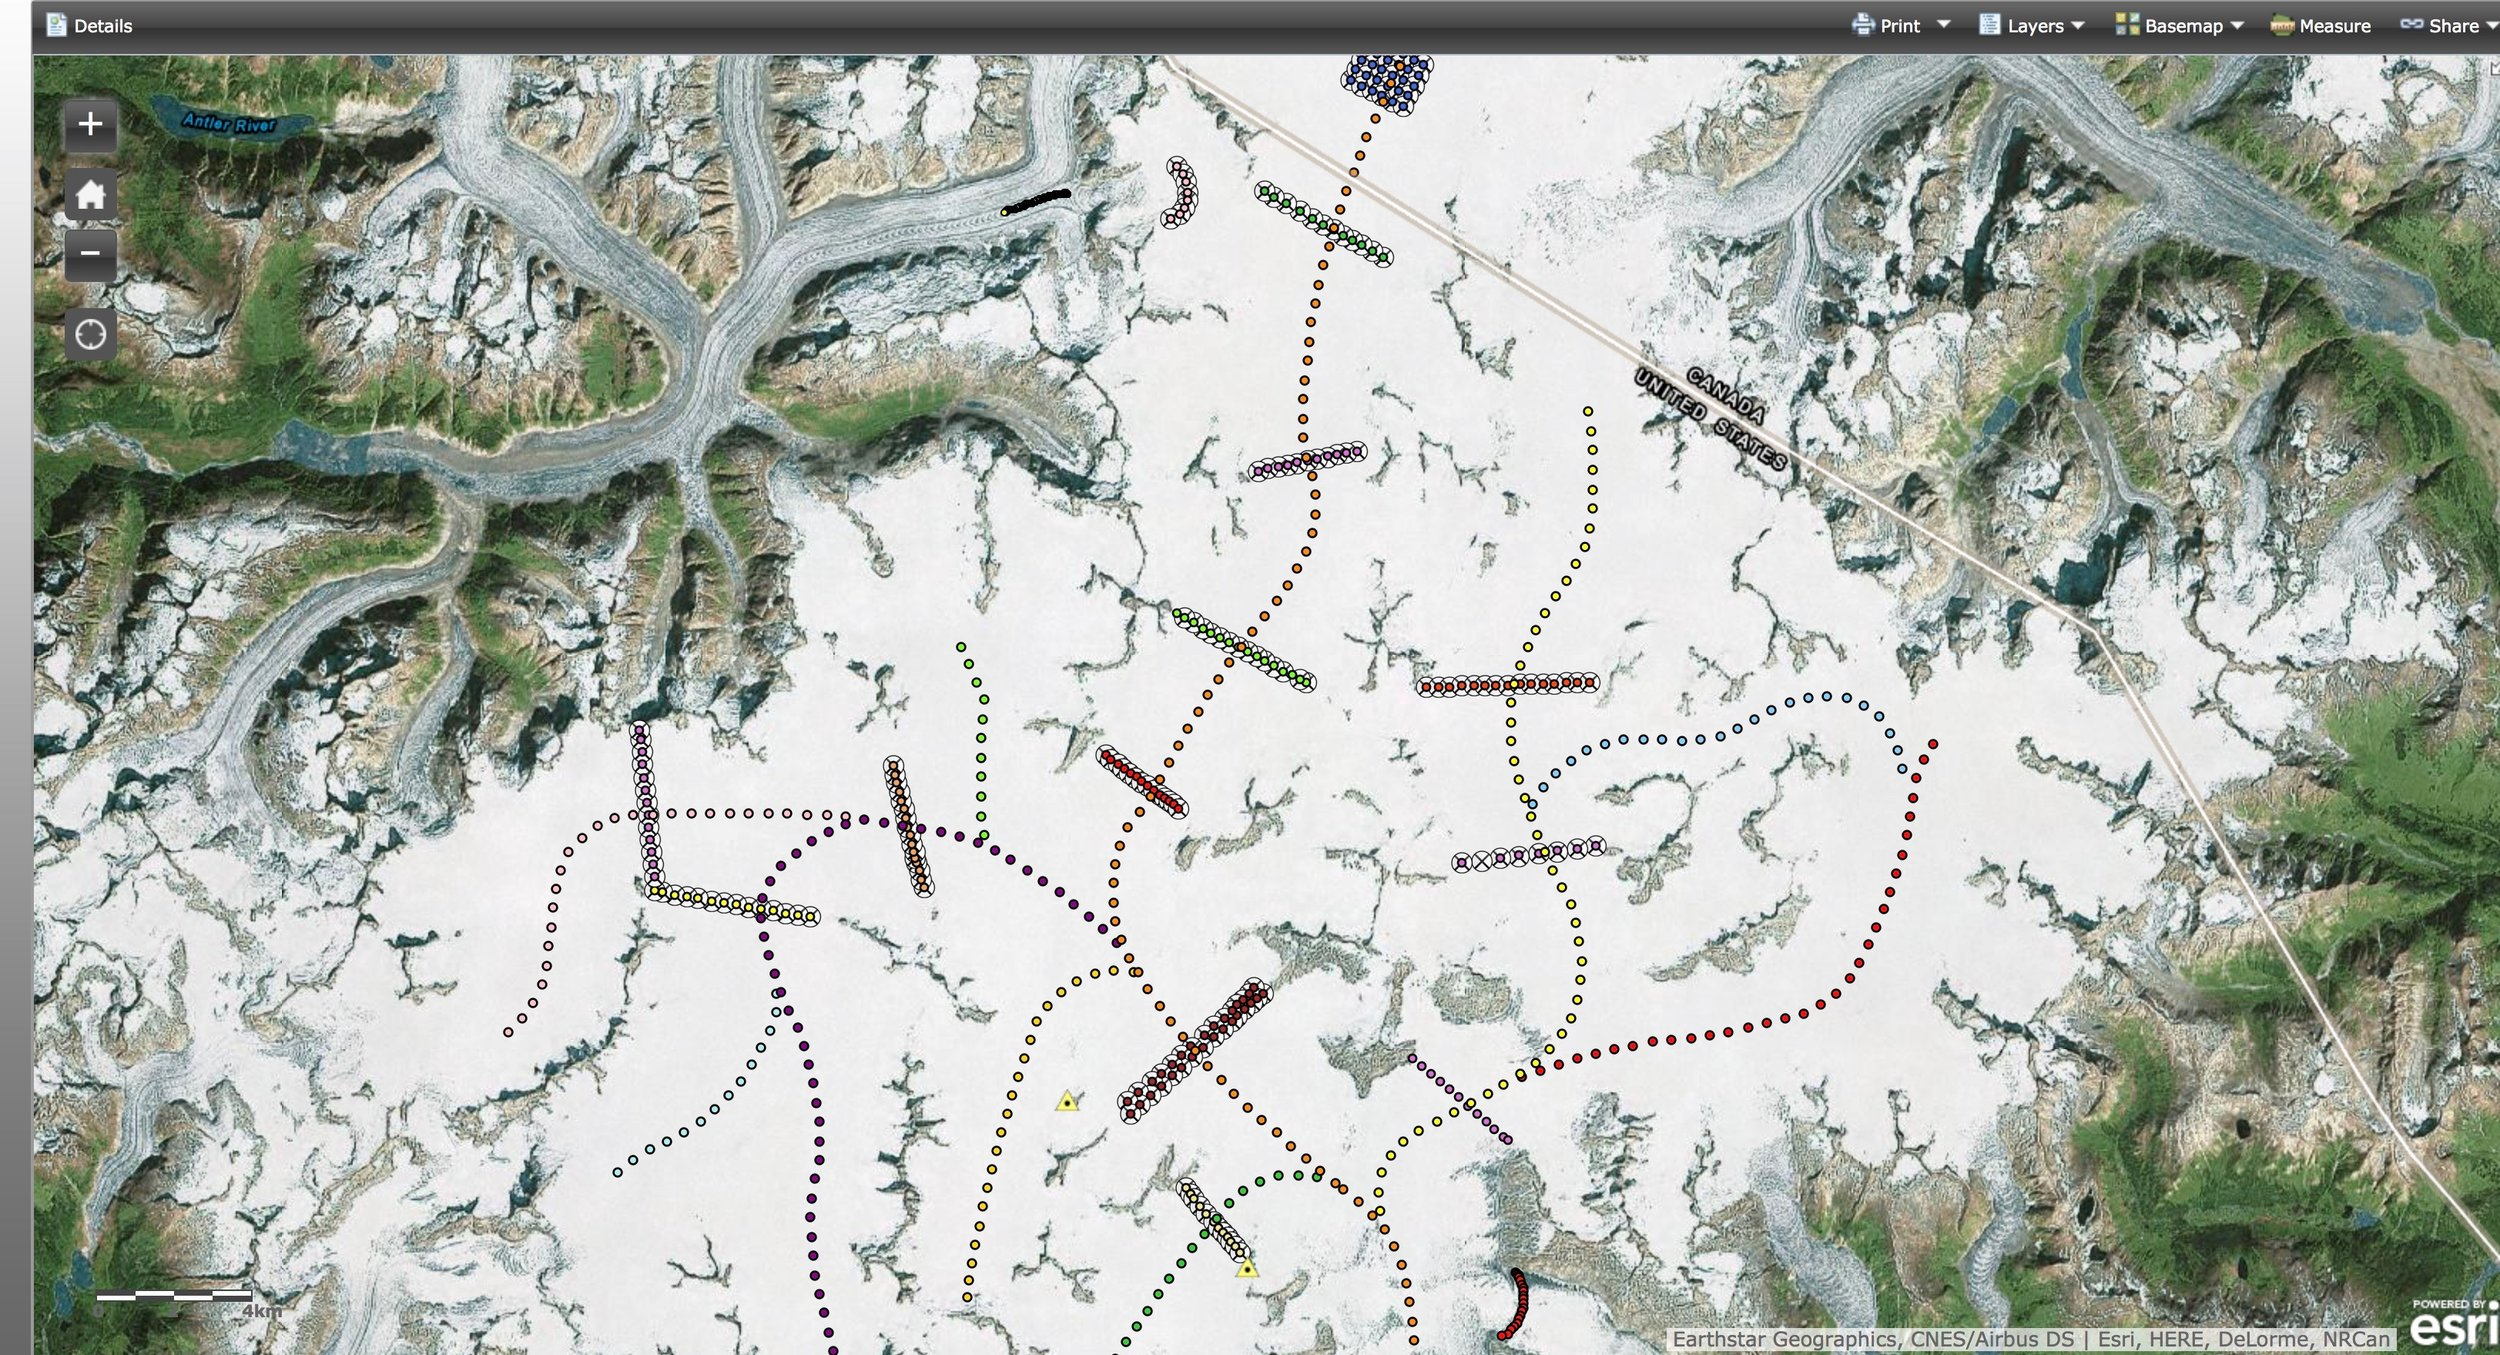 A map of the center of the Juneau Icefield with GPS survey profiles. The longitudinal profiles are represented with the dots running down the center lines of the glaciers. The transverse profiles are the block line sections running perpendicular to the longitudinal profiles. By collecting different data along both types of transects, we can paint a picture of elevation change over the entire area.